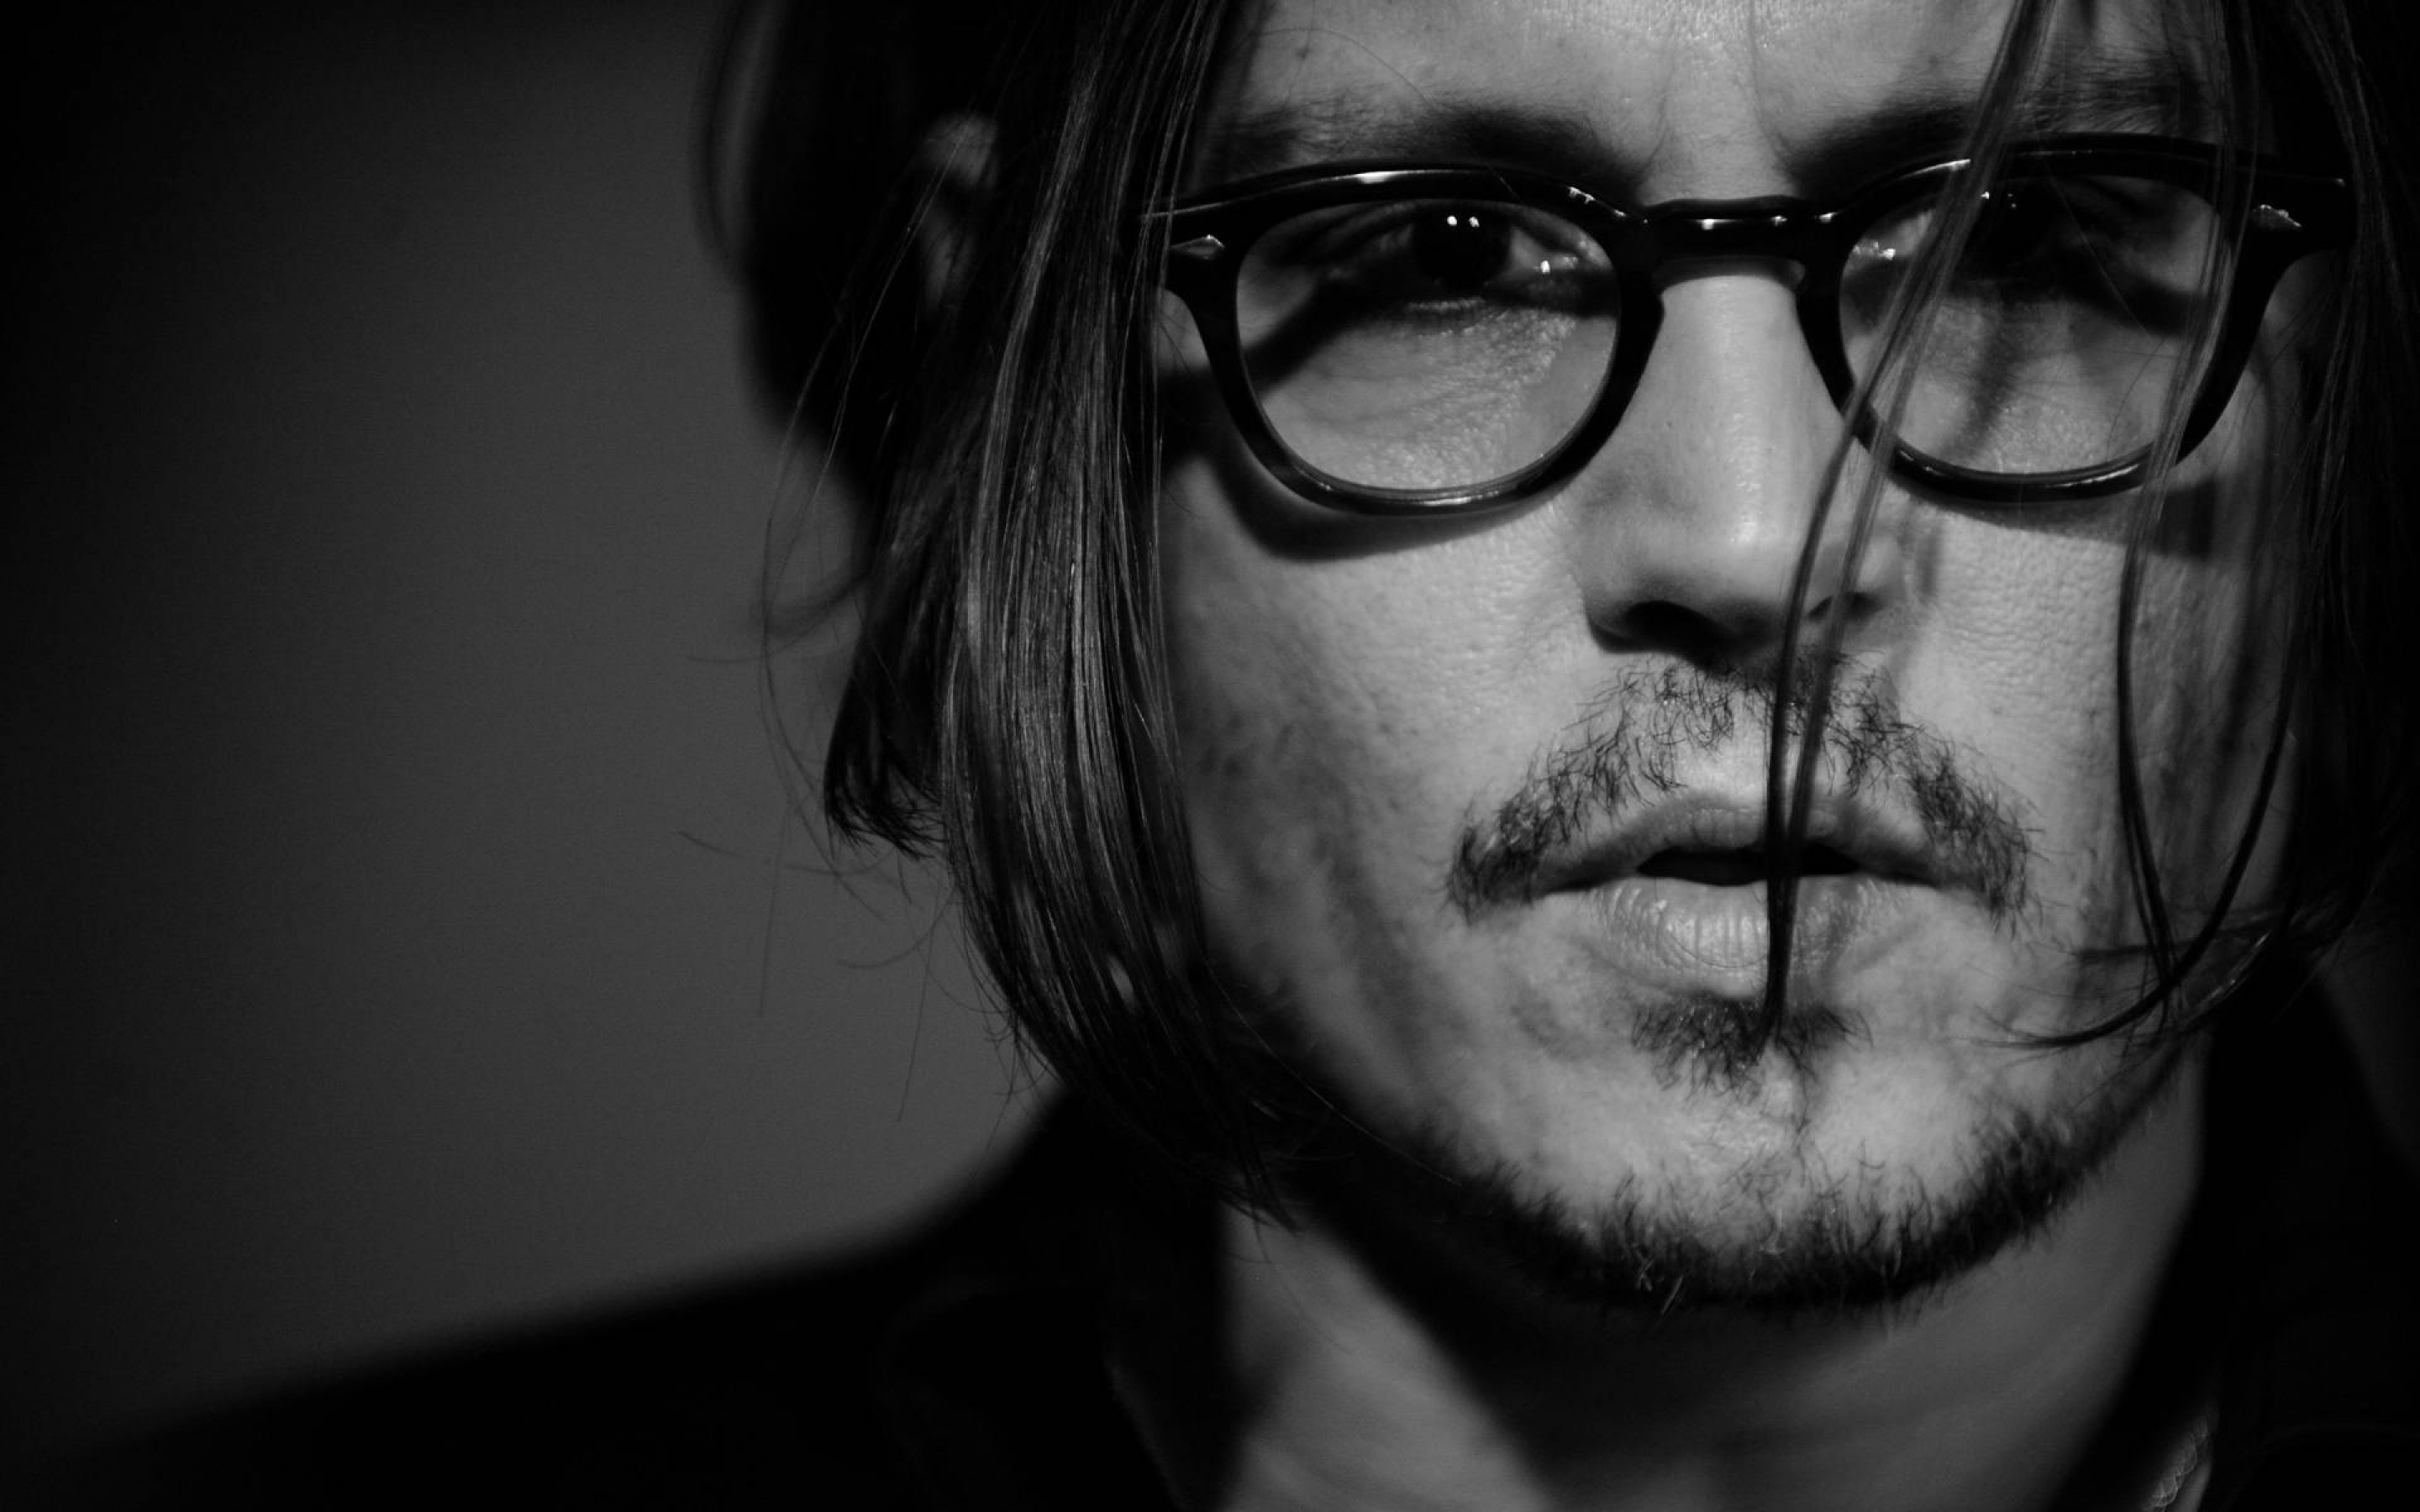 johnny depp cool